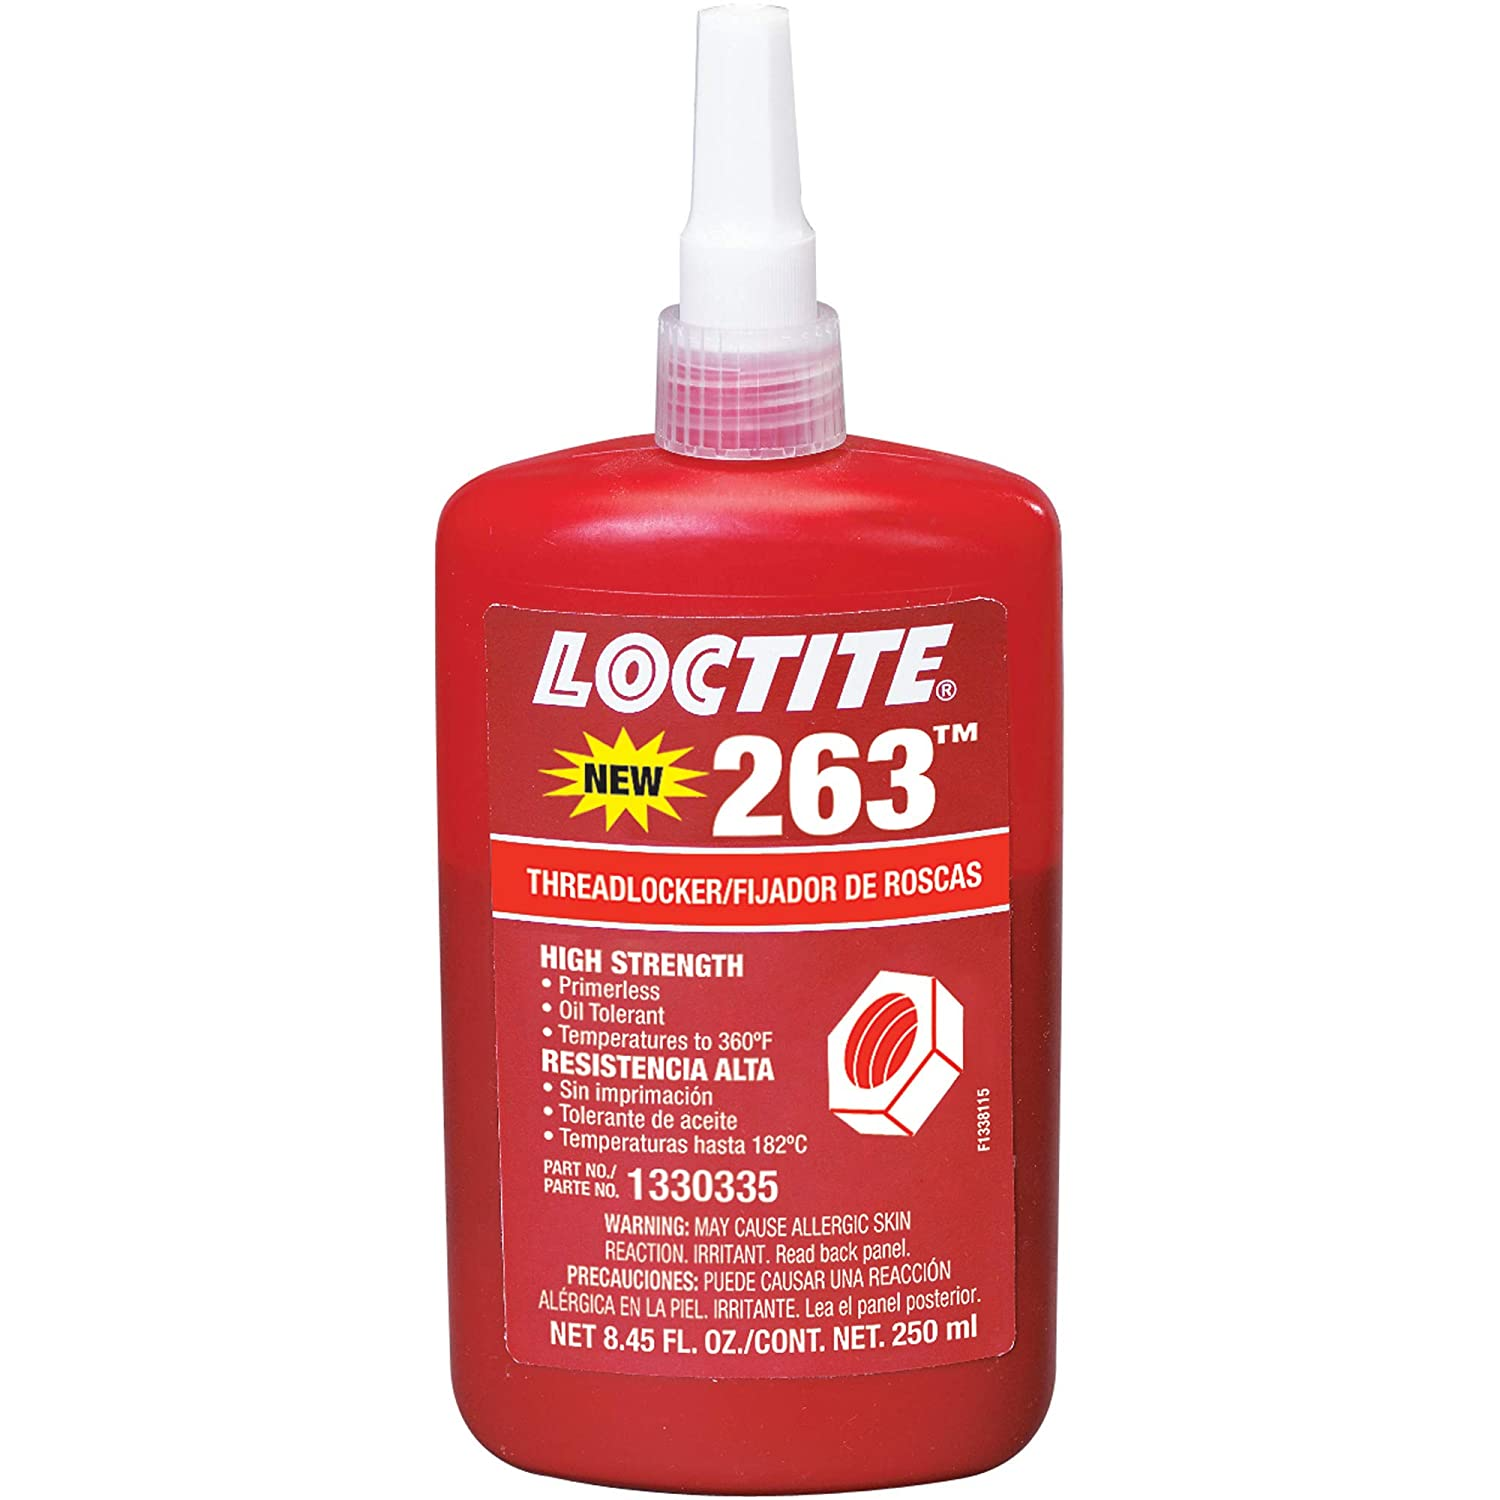 1330335 Loctite Primerless Threadlocker 263, 250mL, Red